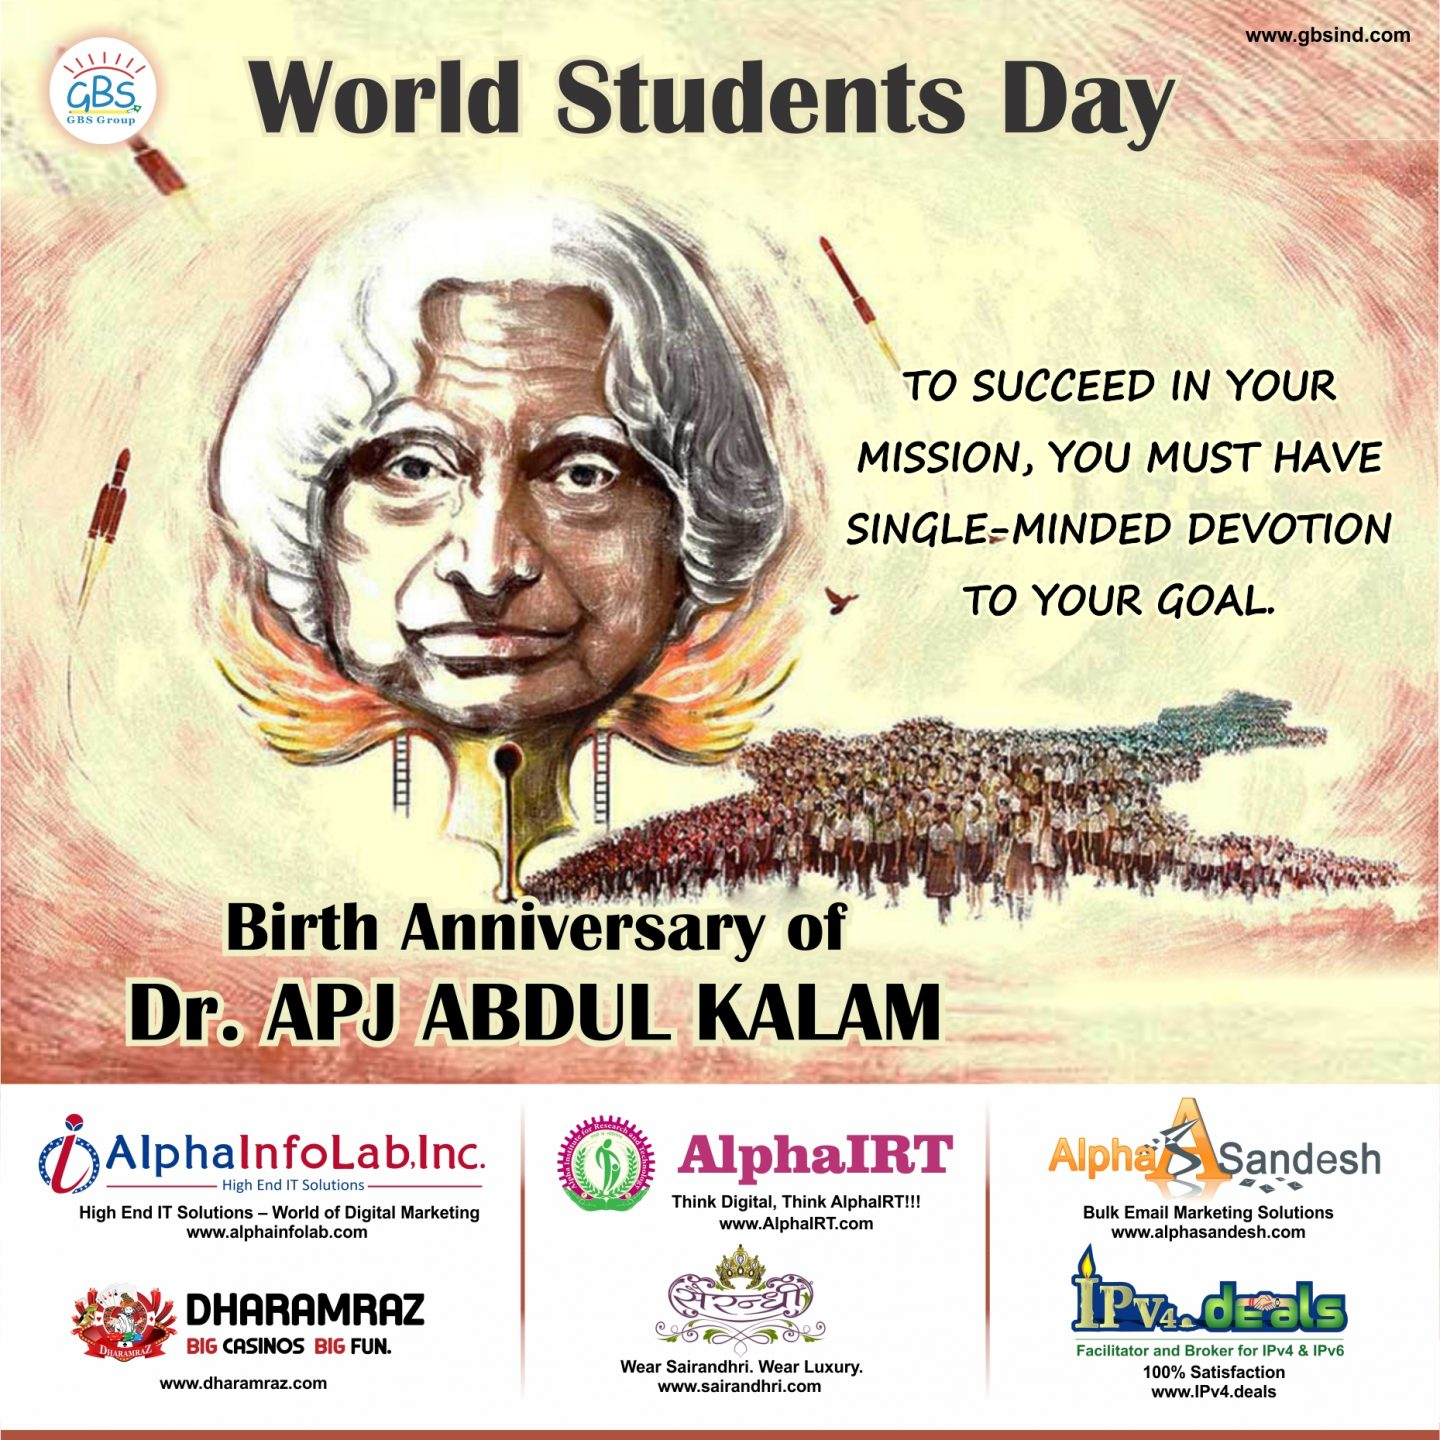 Birth Anniversary Of Dr. APJ Abdul Kalam